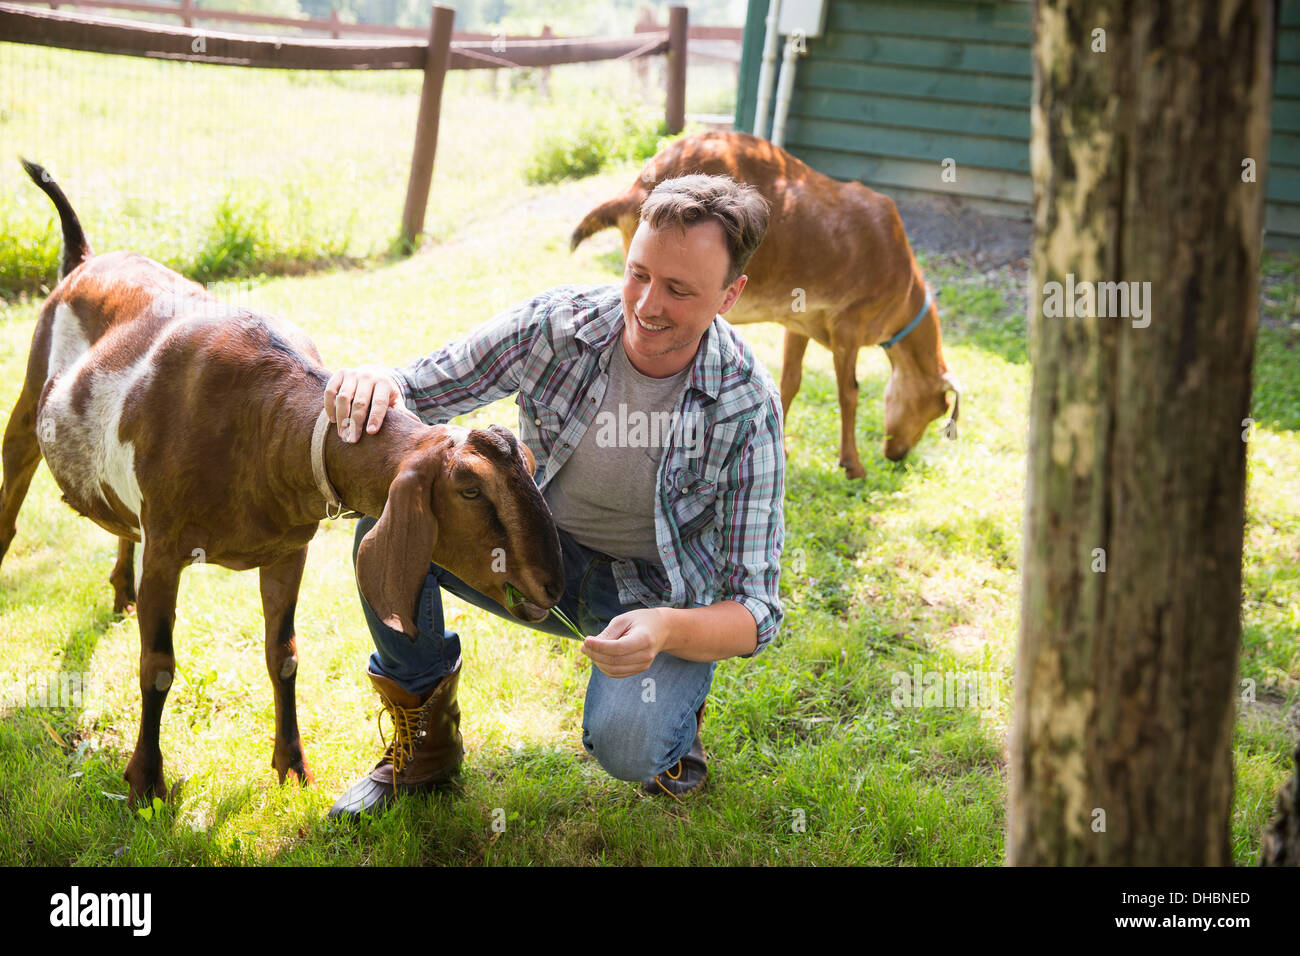 An organic farm in the Catskills. A man in a paddock with two large goats. - Stock Image